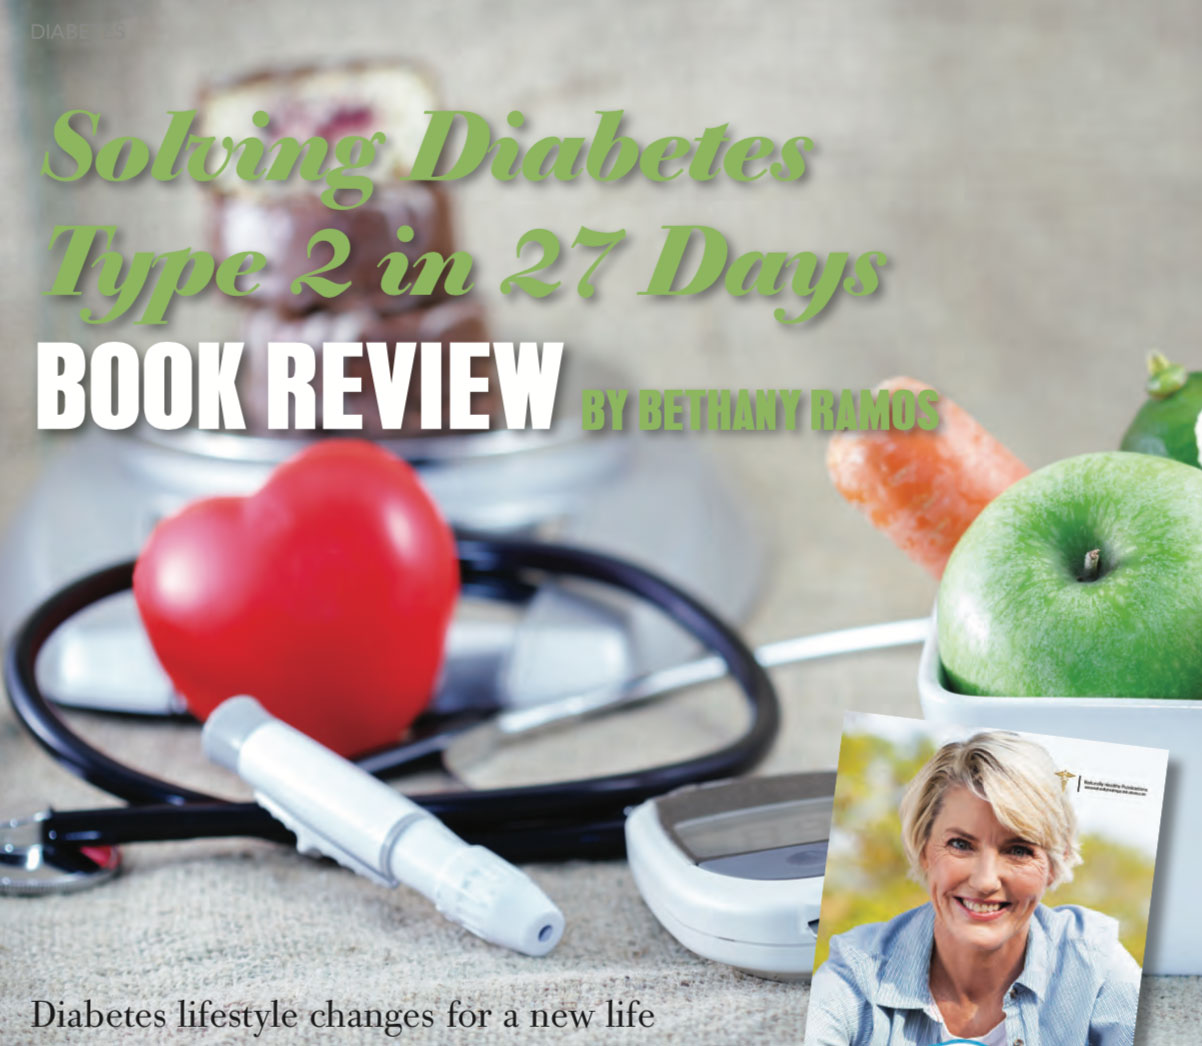 Solving diabetes type 2 in 27 days